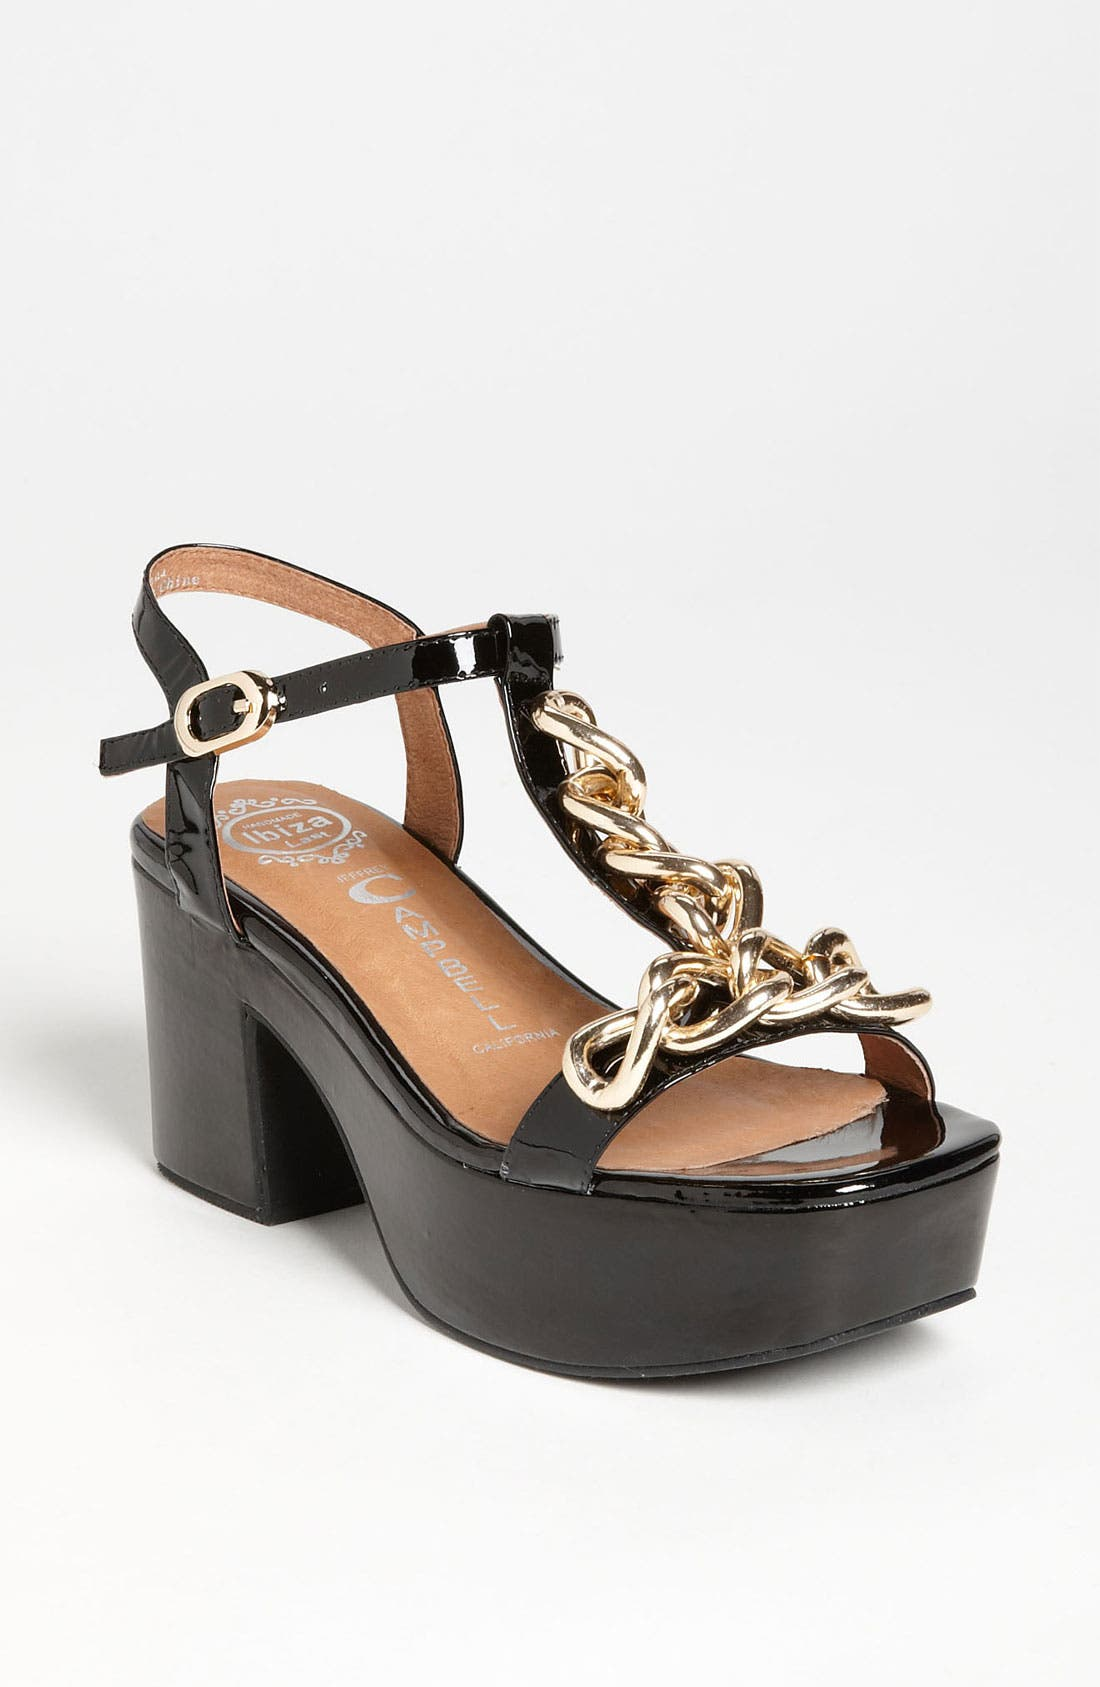 Alternate Image 1 Selected - Jeffrey Campbell 'Yasmine' Sandal